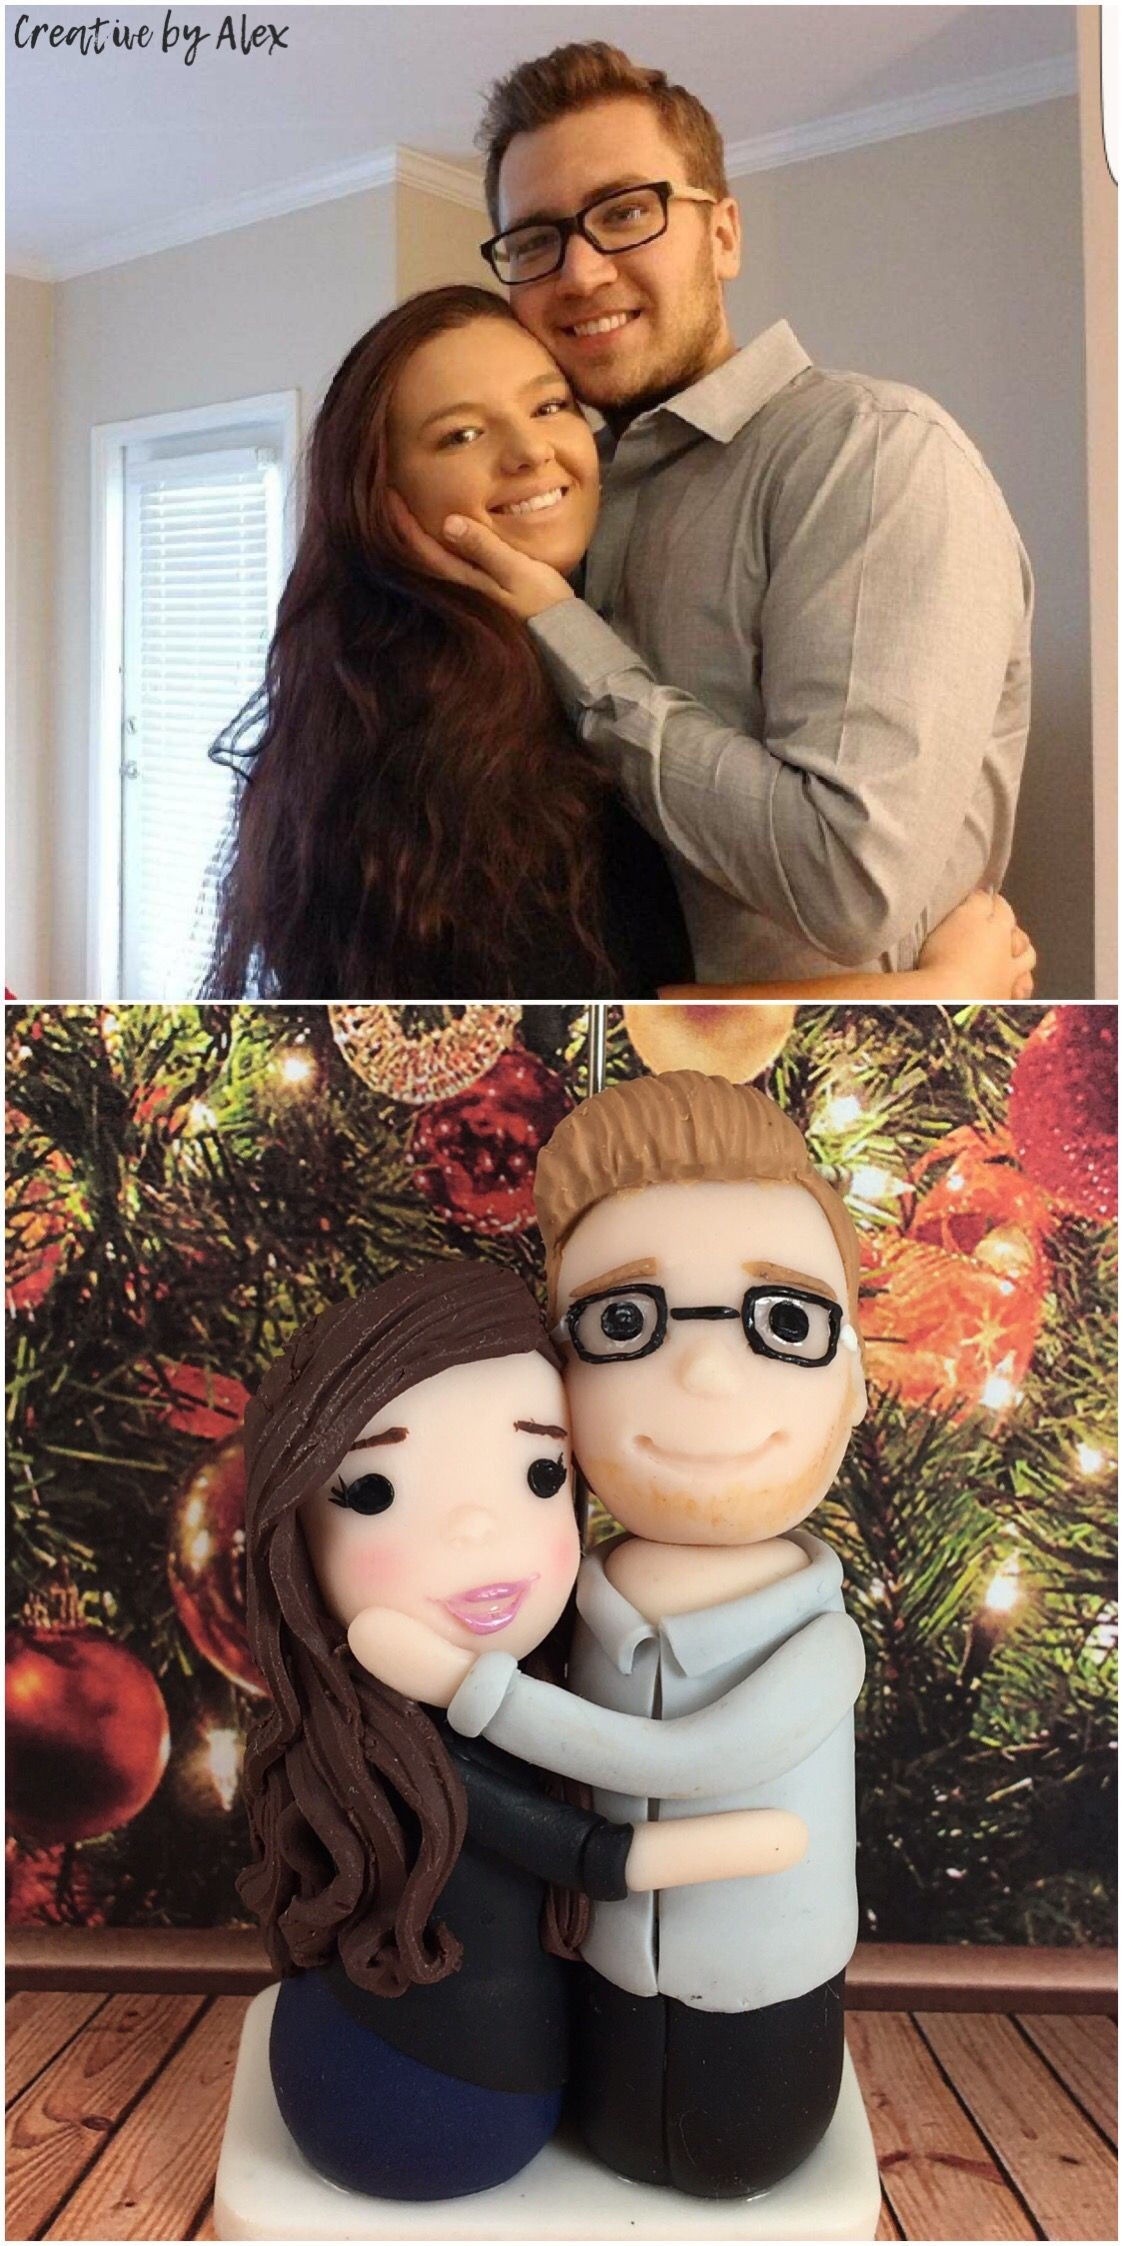 Perfect Gift Idea For Girlfriend For Boyfriend Personalized Figures Polym Boyfriend Christmas Diy Boyfriend Personalized Gifts Christmas Gifts For Boyfriend